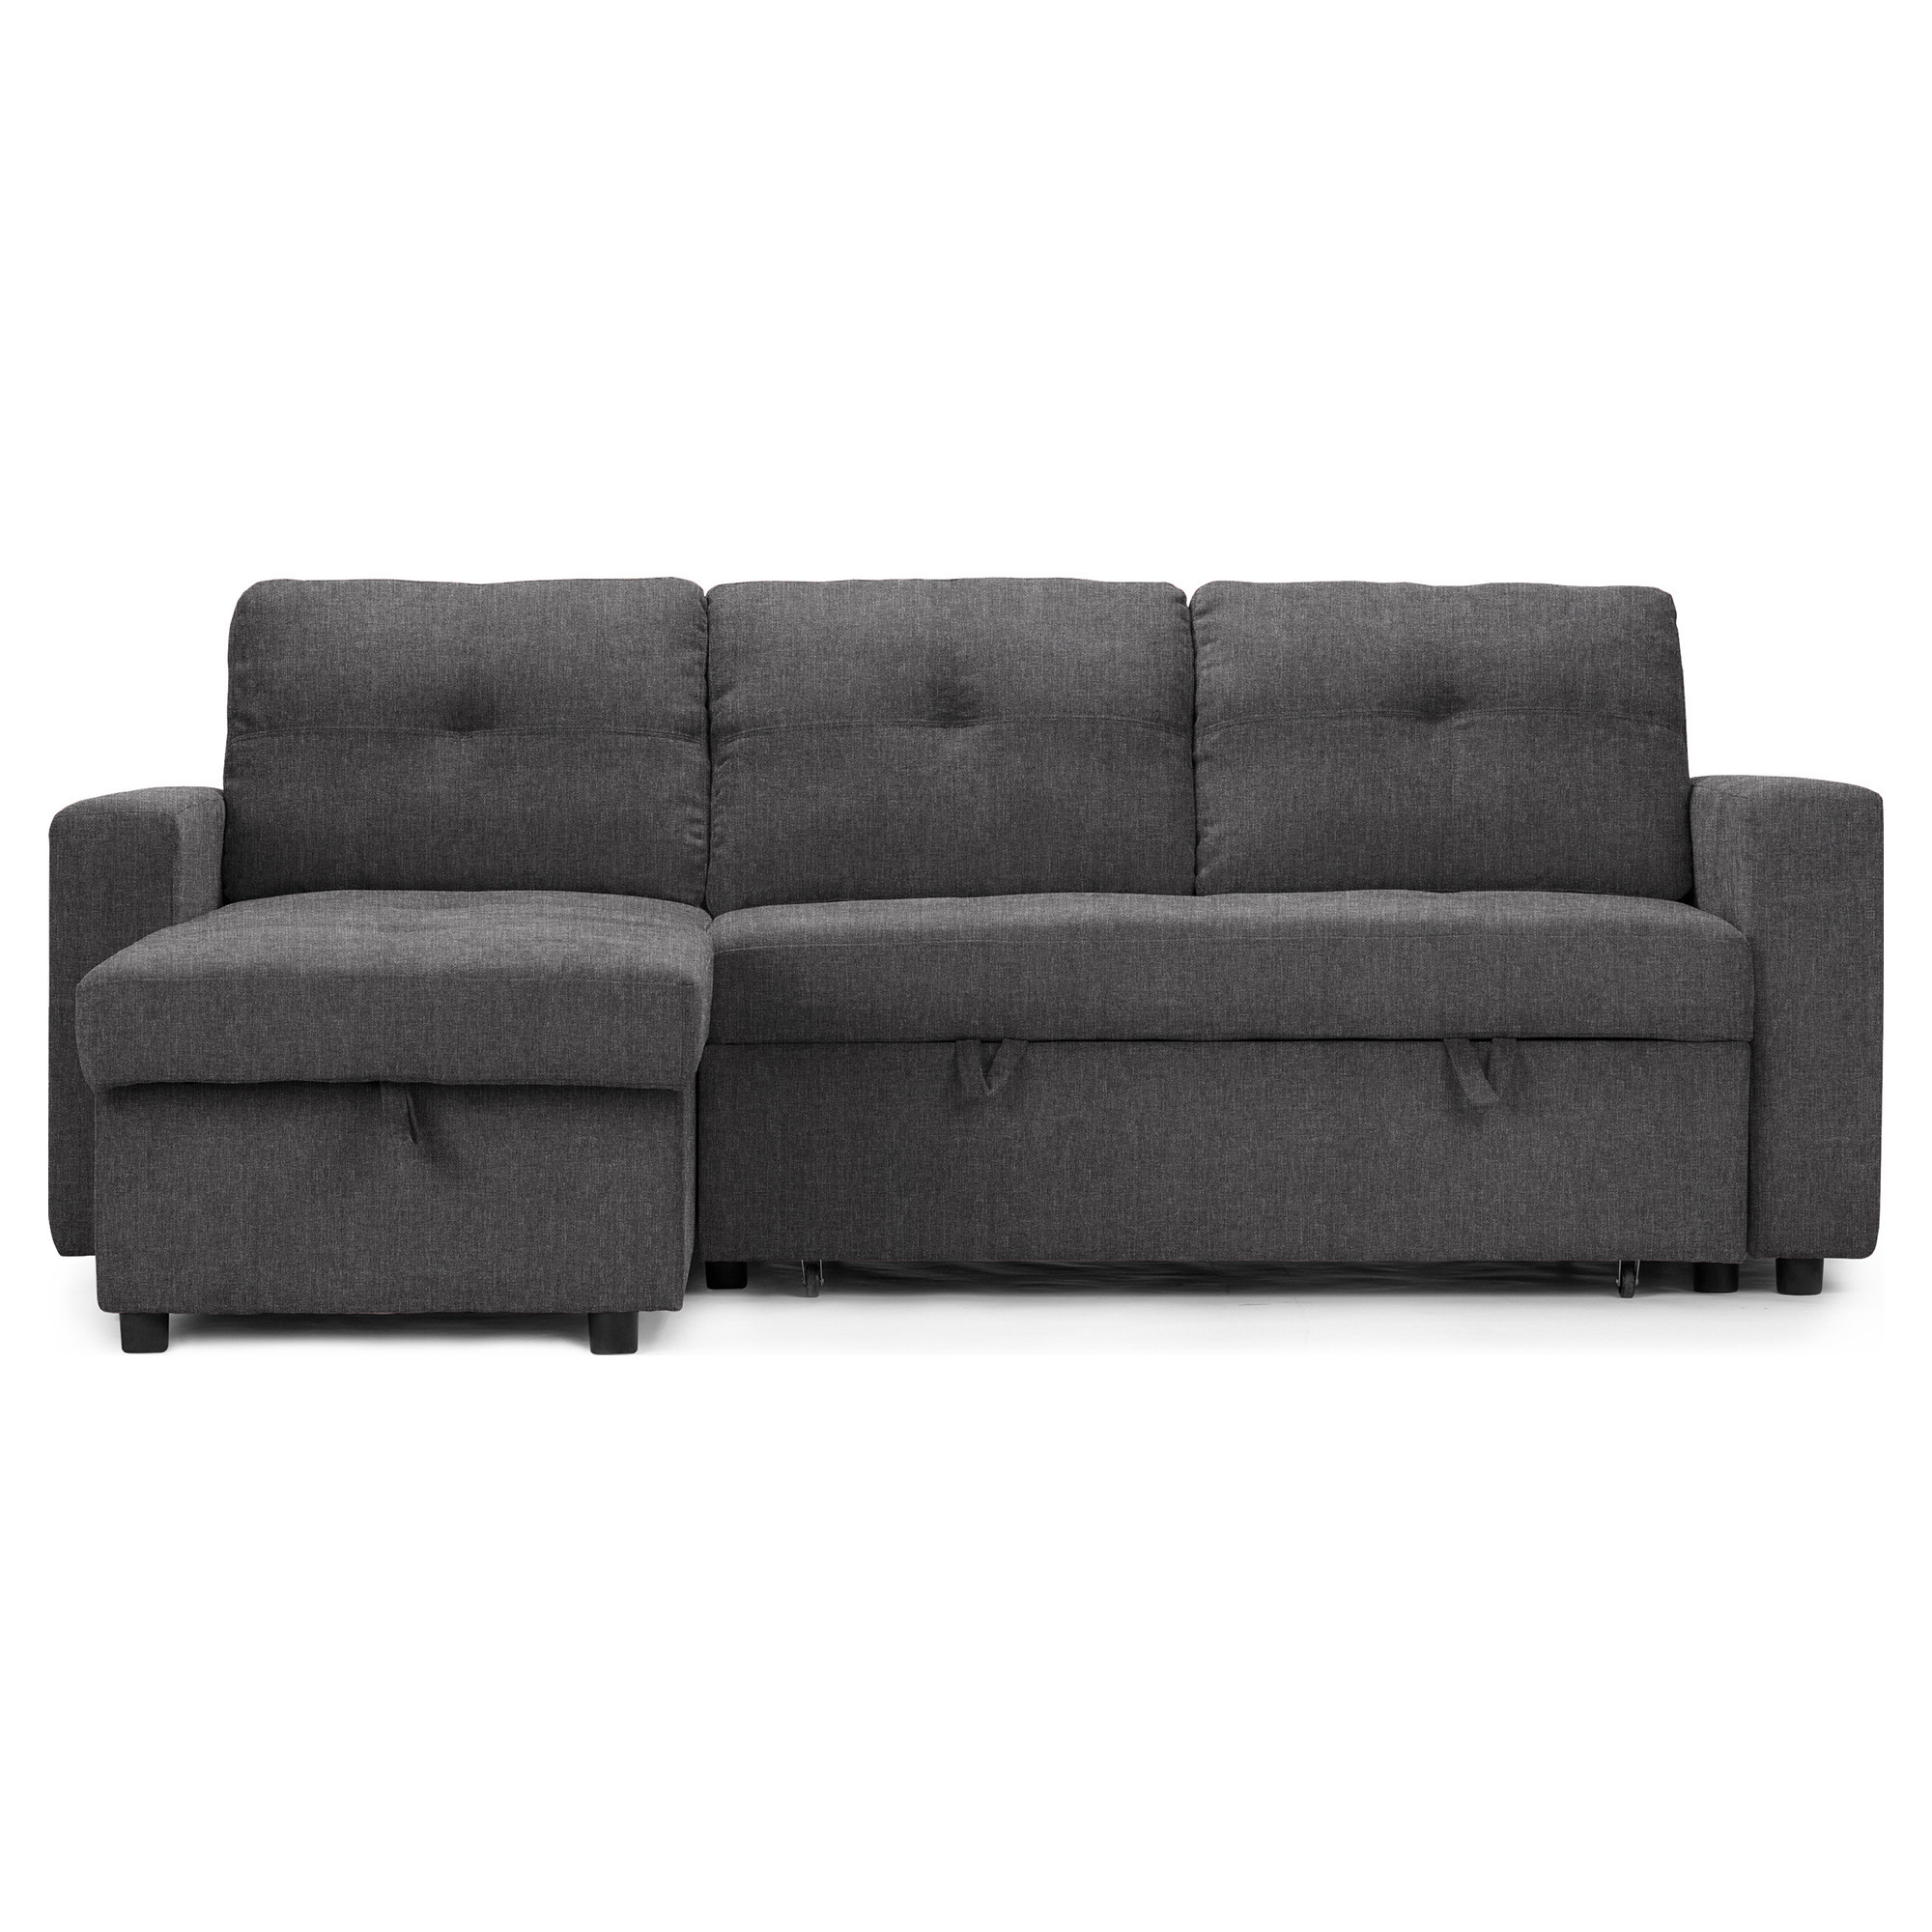 Terrific Grey Sectional Sofa Futon Gmtry Best Dining Table And Chair Ideas Images Gmtryco